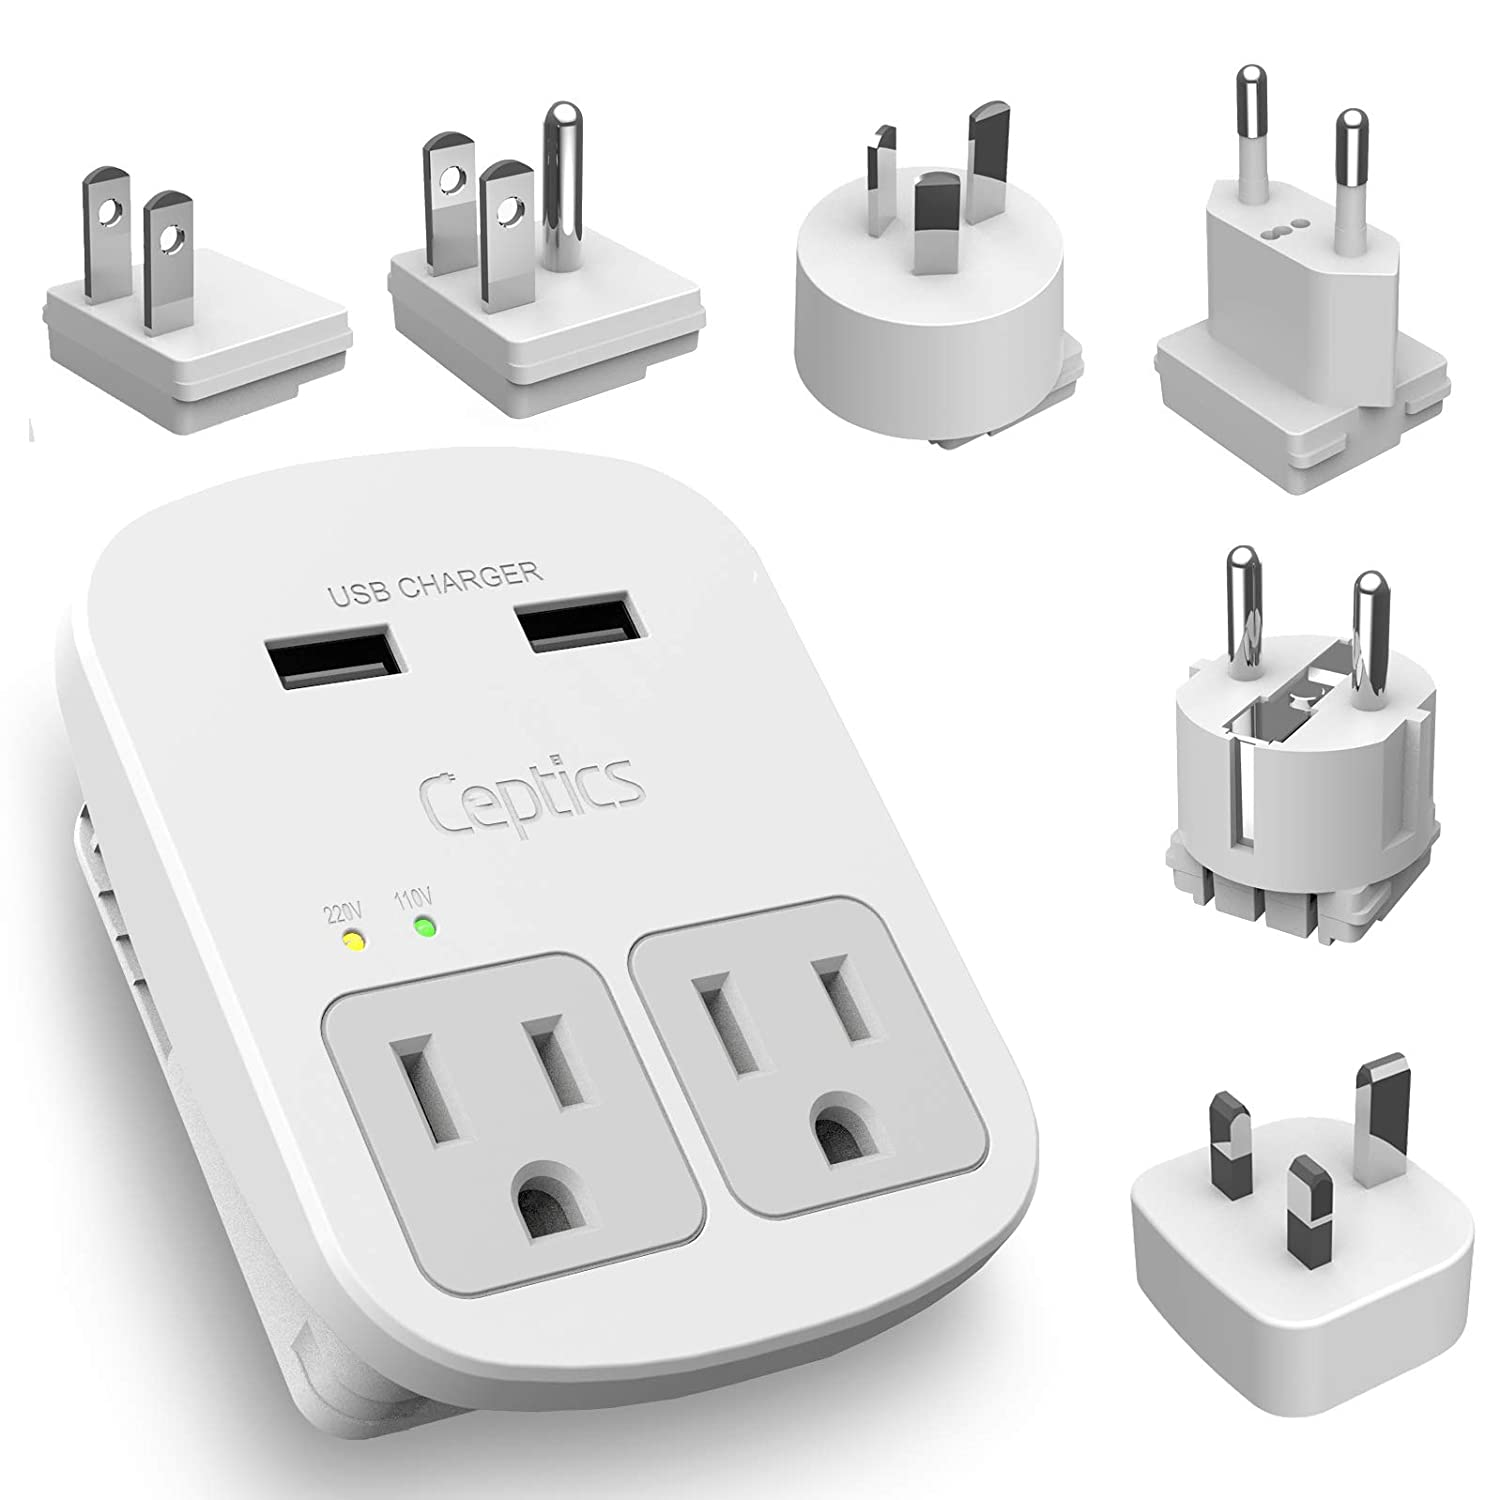 World International Travel Adapter Plug Grounded Dual USB 2 USA Outlets Input - Plugs for Europe, Asia, China, USA, South America